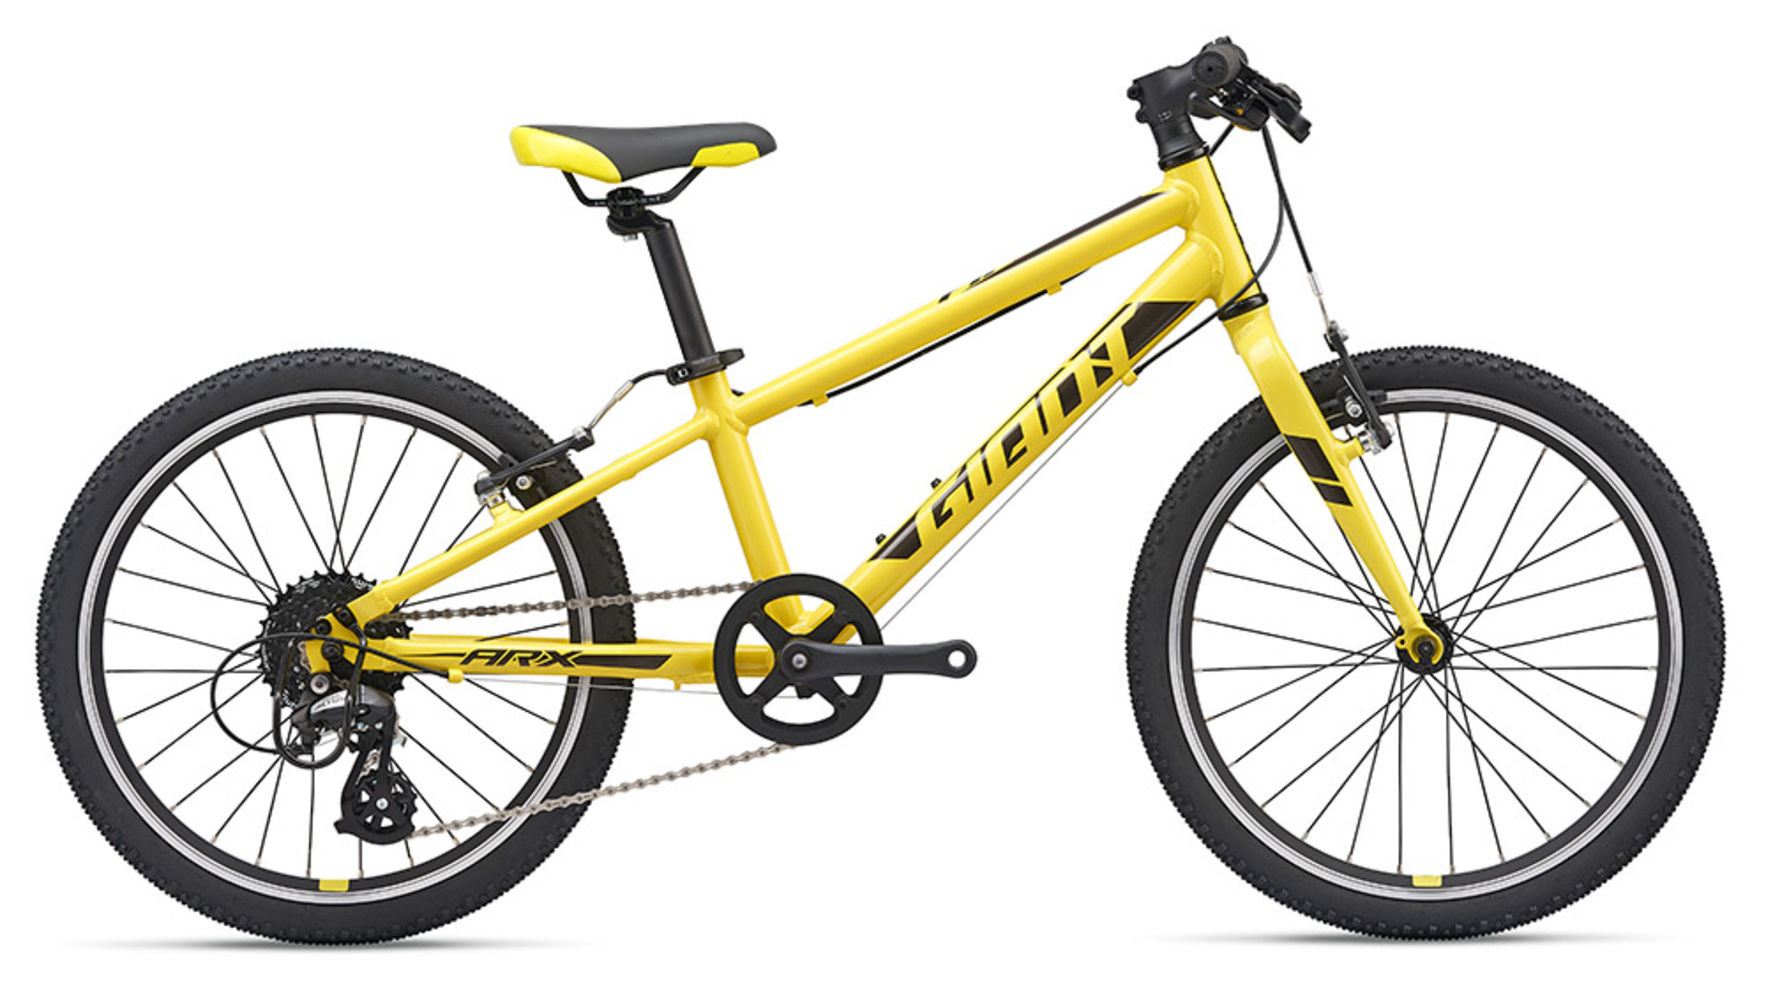 2019 Giant Arx 20 Childs Bike In Yellow 163 269 10